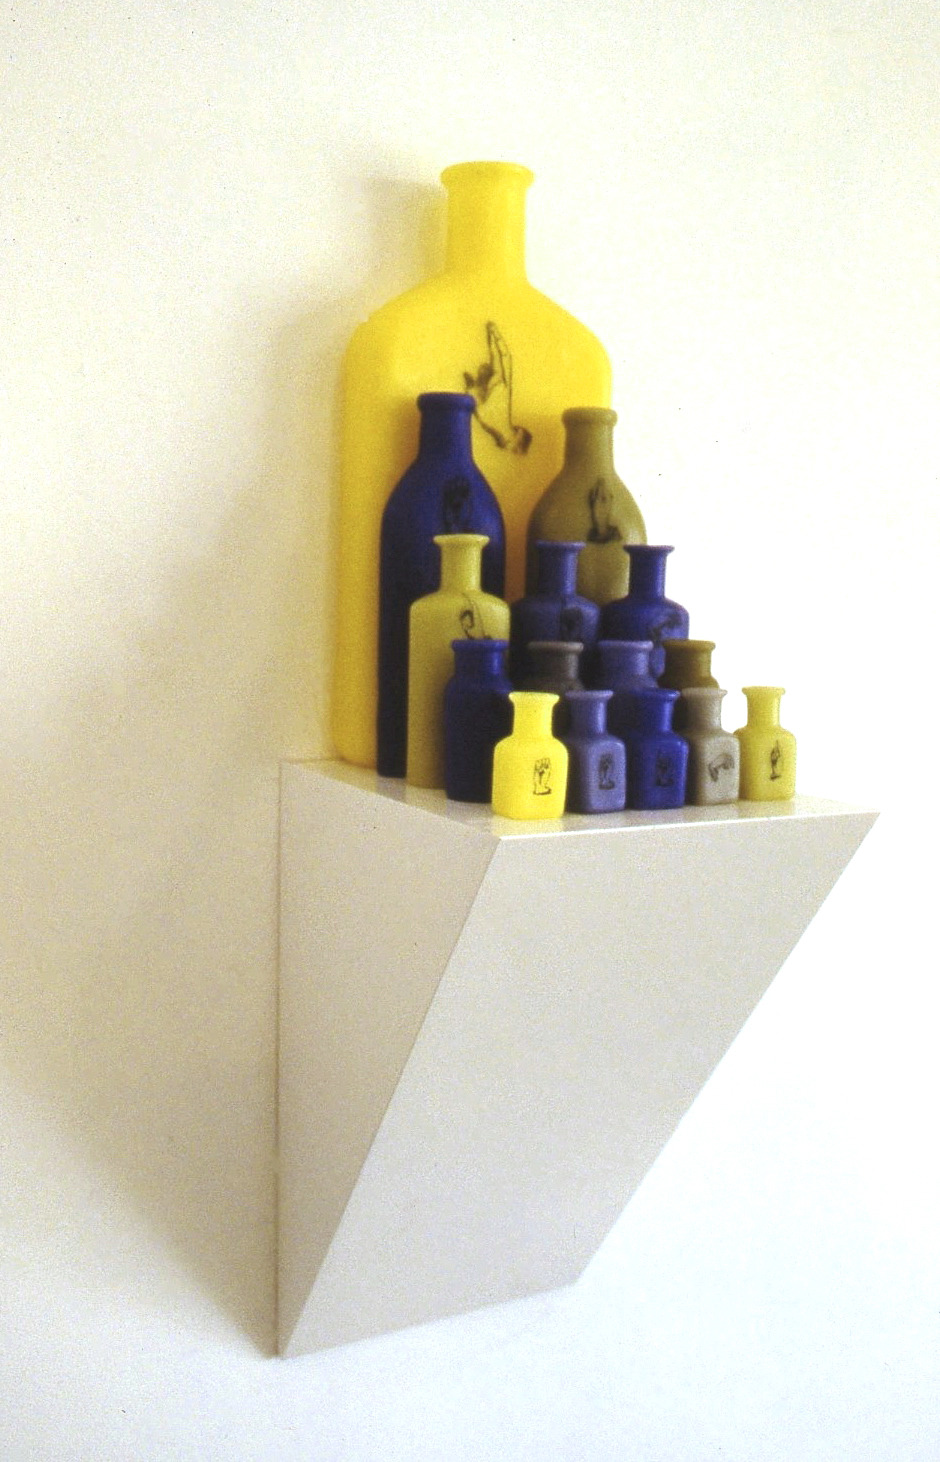 Reading is Seeing,  1999: Wax, wood, applied text/image; 25 x 9 x 7 inches. The sign language hands spell out the title of the piece.